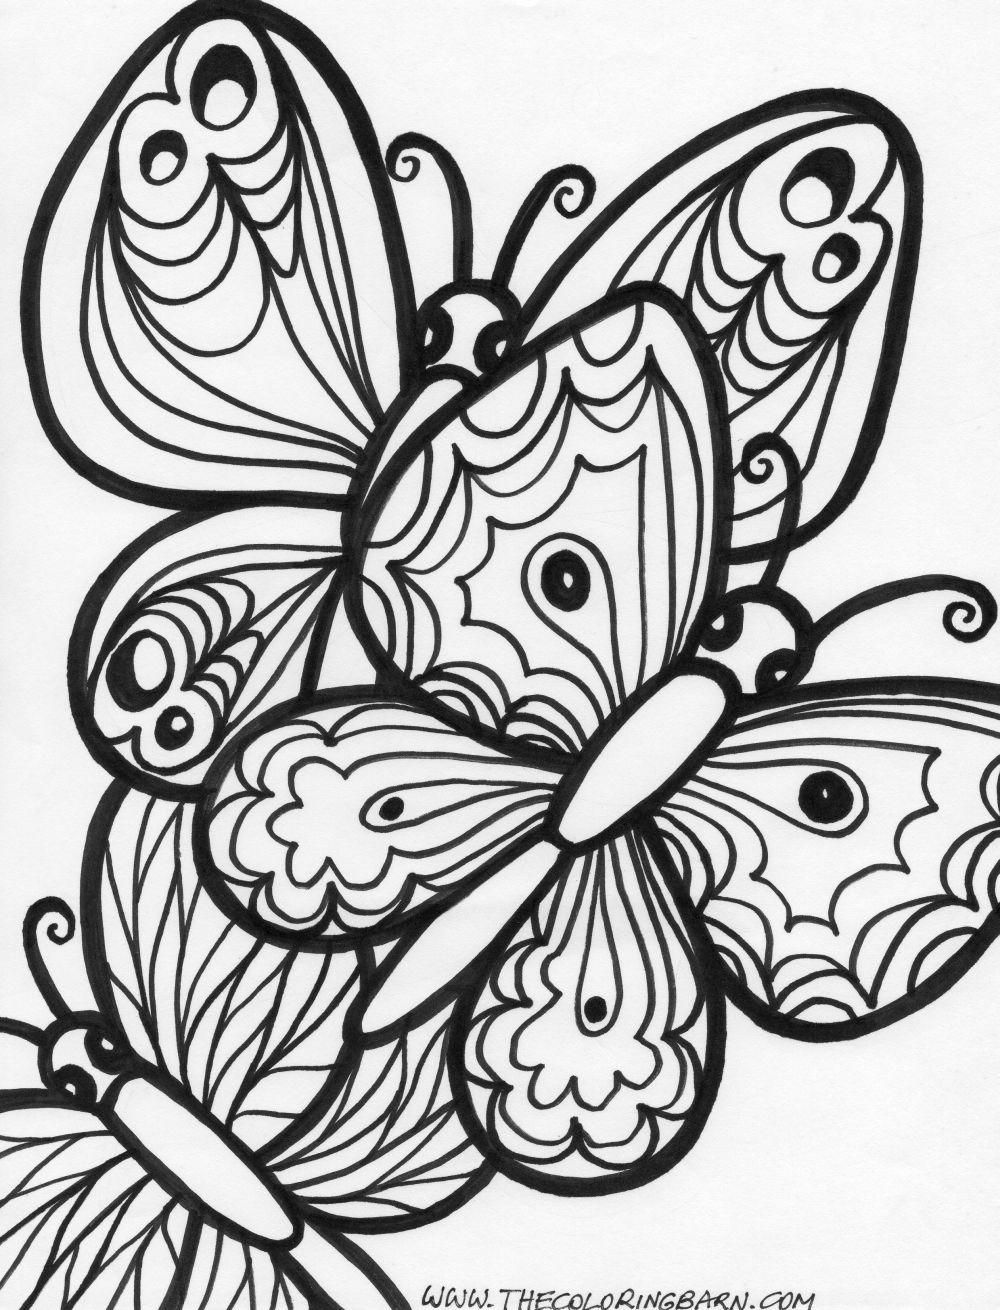 Printable coloring books adults - Printable Coloring Pages For Adults With Dementia Coloring Page